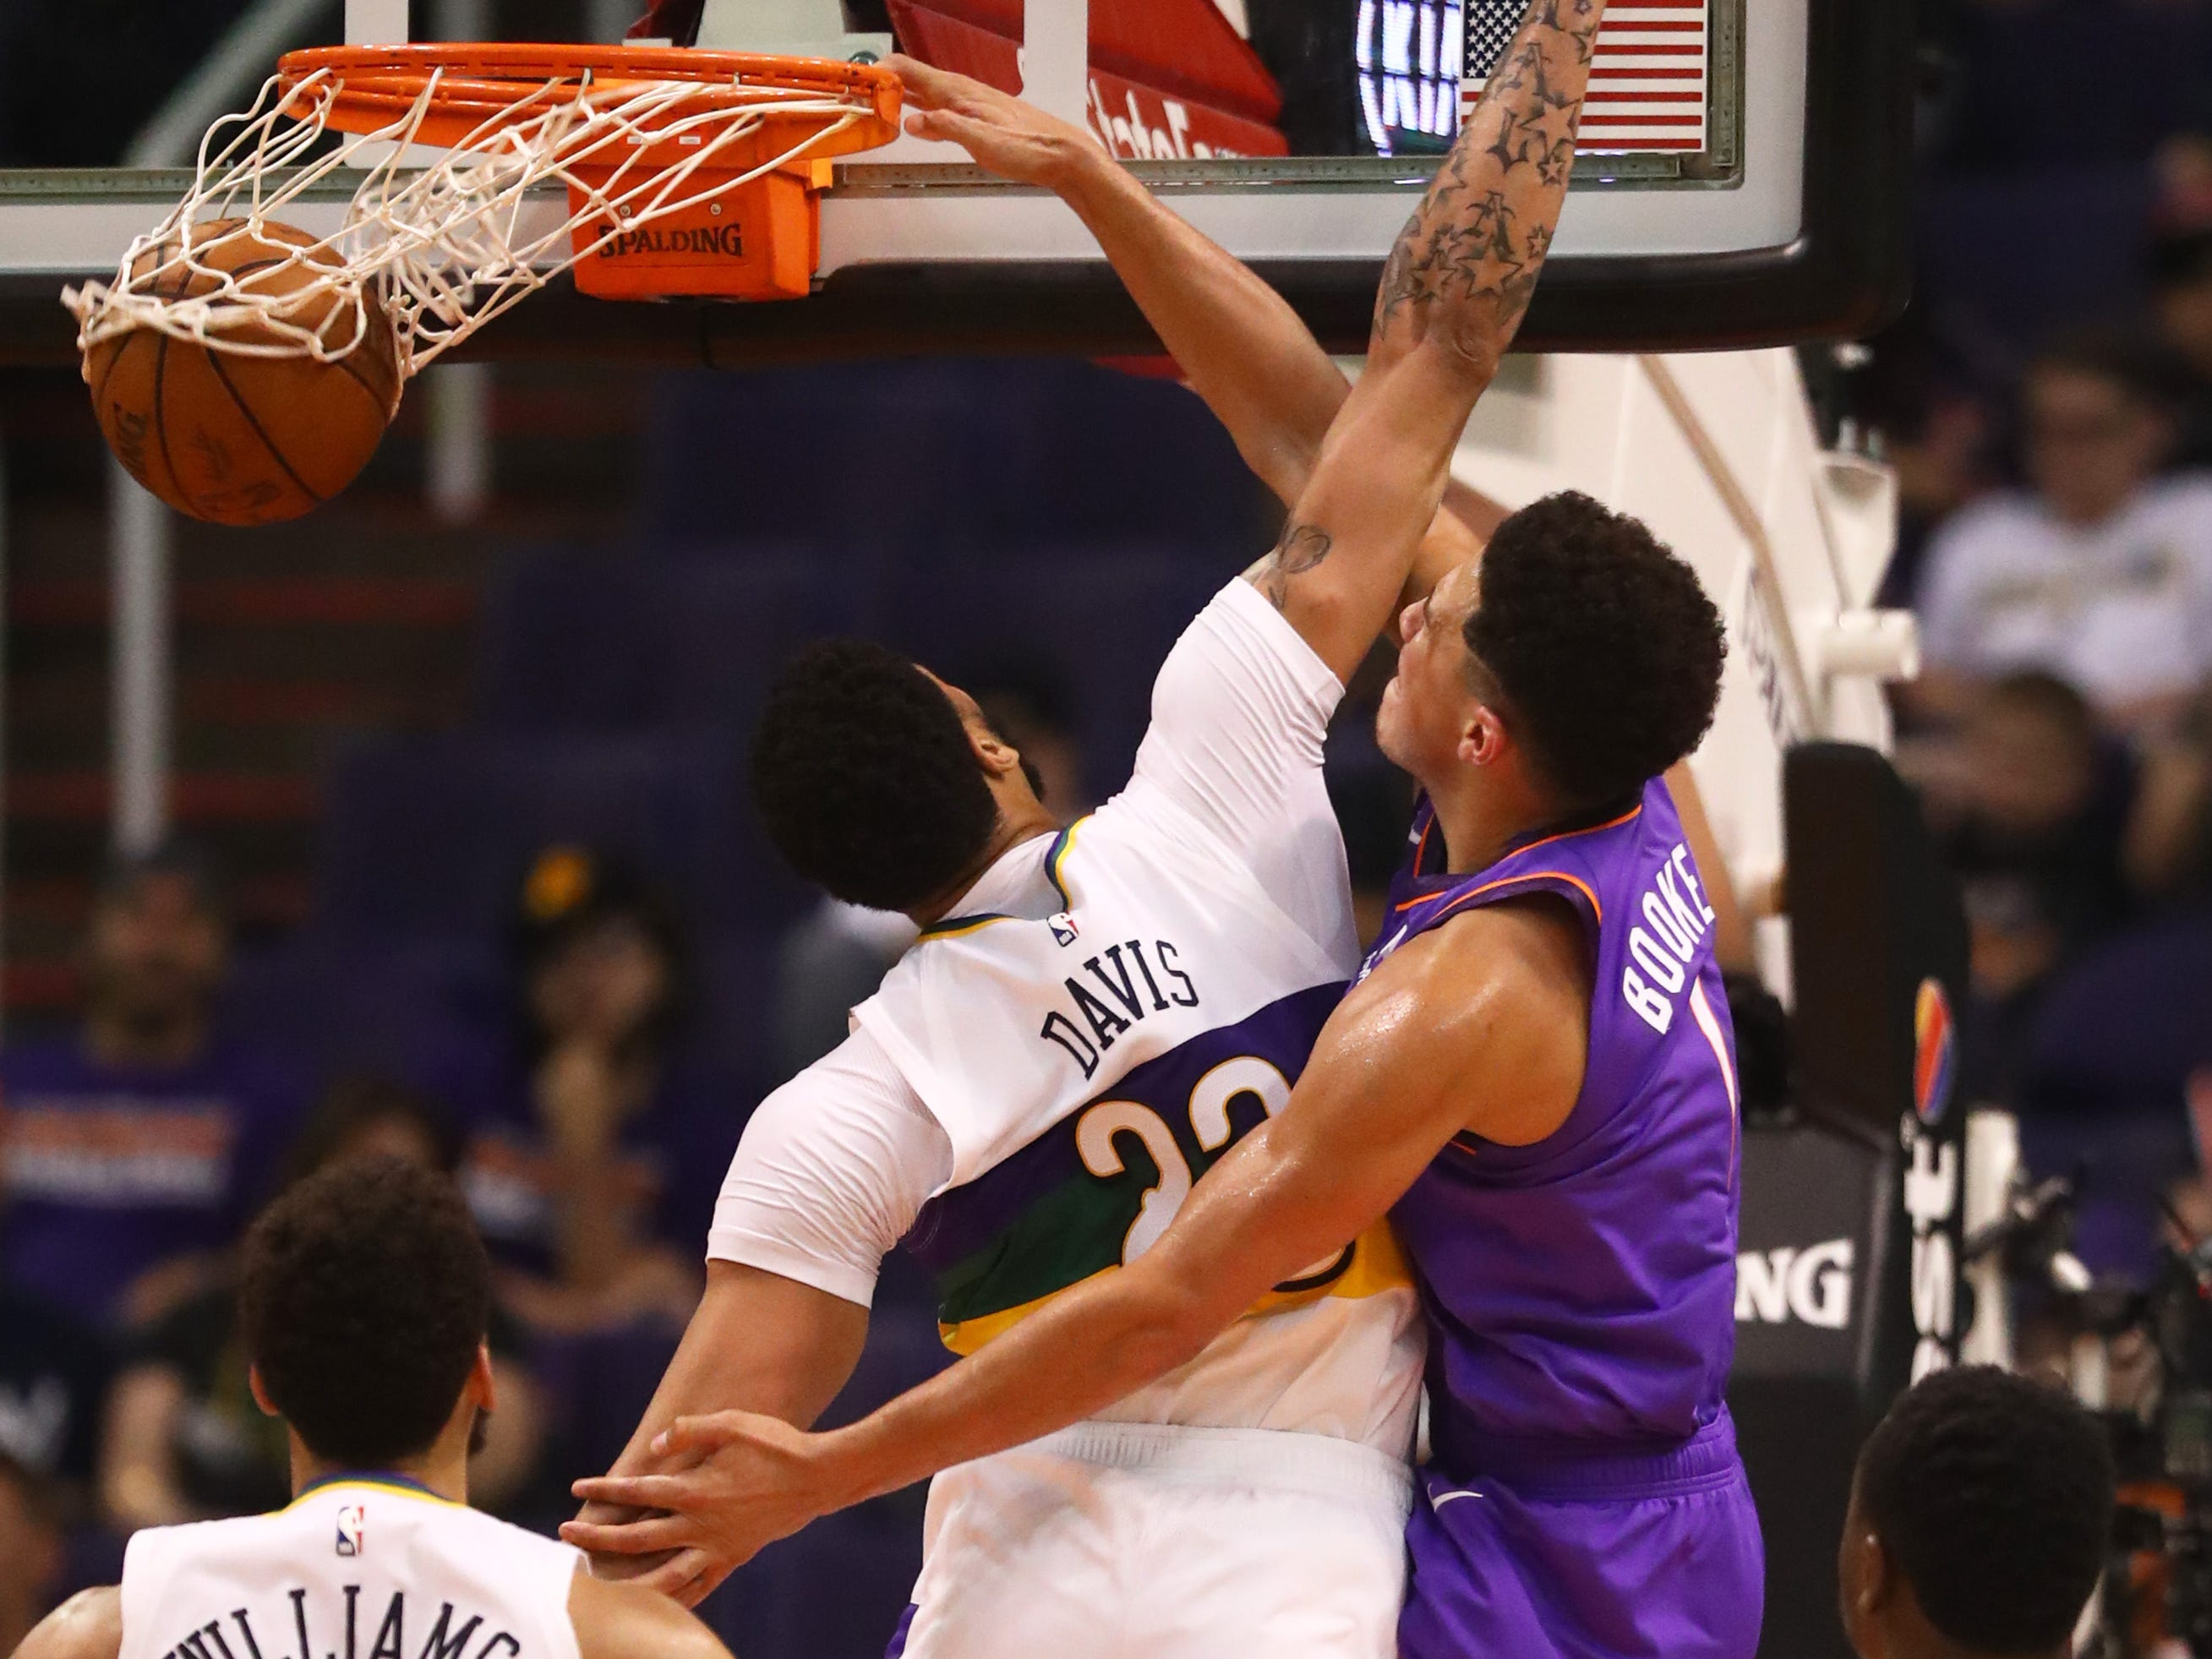 March 1: Suns guard Devin Booker throws down the ferocious one-handed slam over Pelicans forward Anthony Davis in Phoenix.